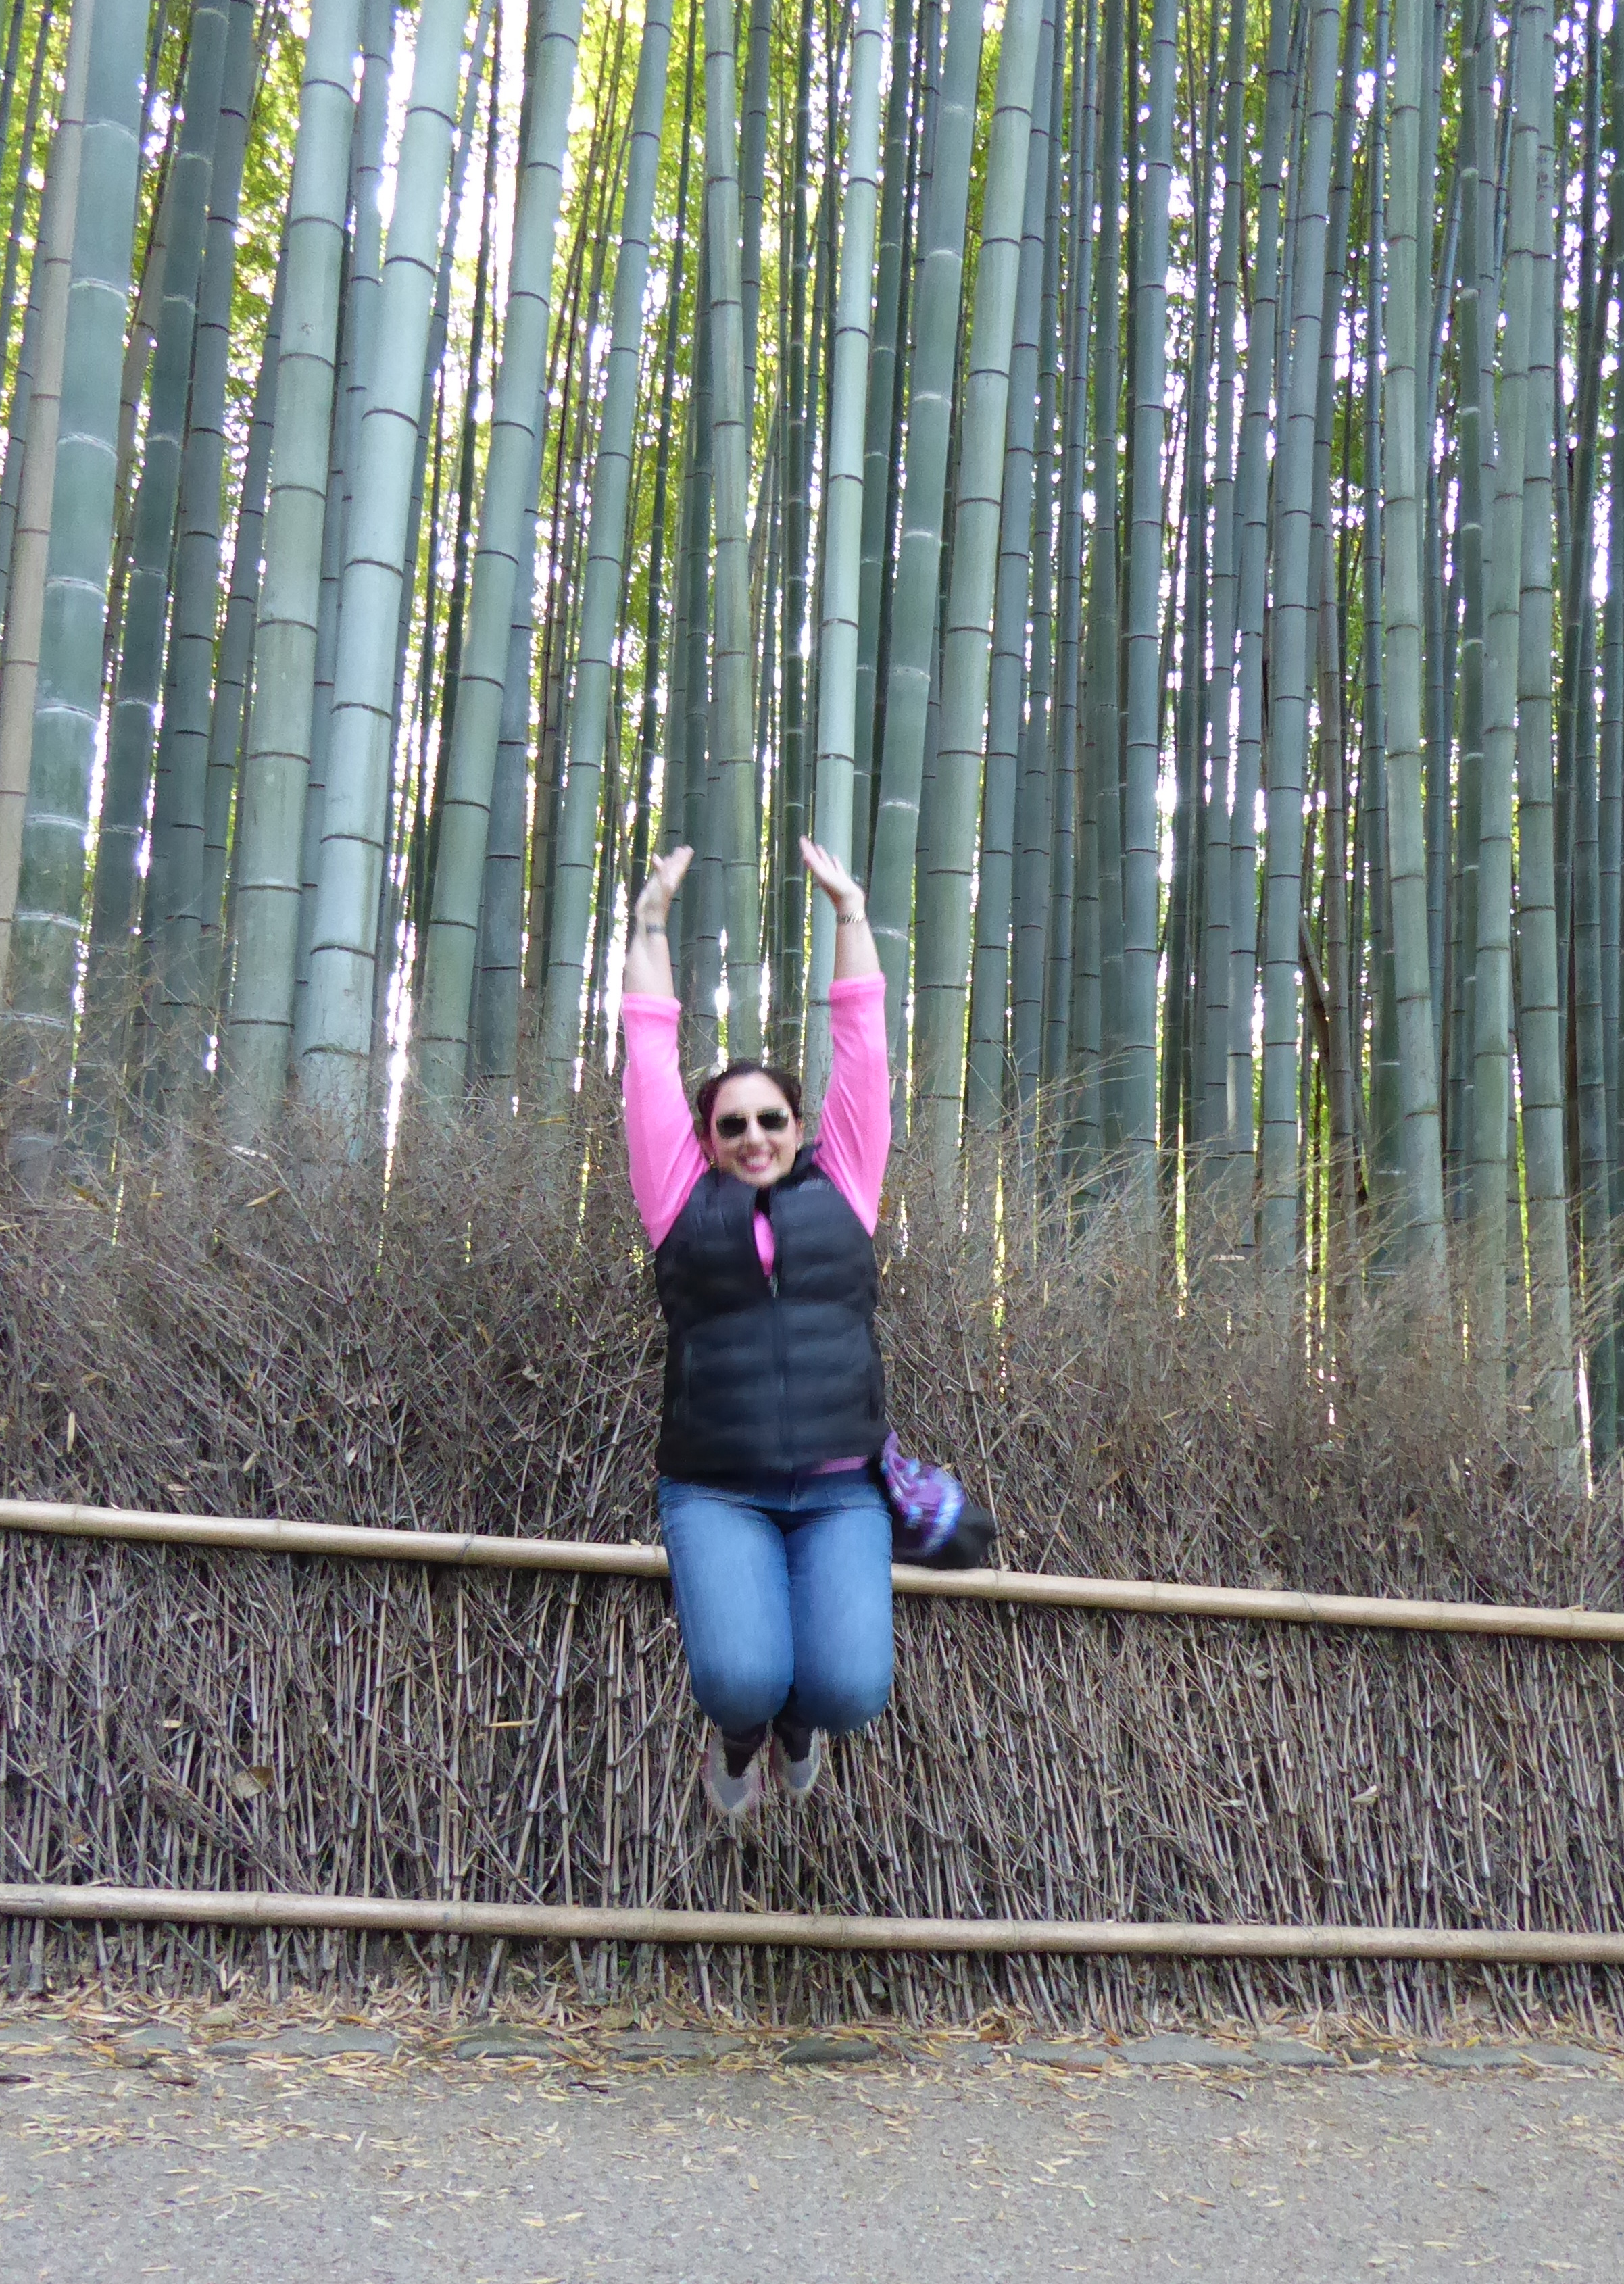 Jumping for joy at the end of an amazing trip!